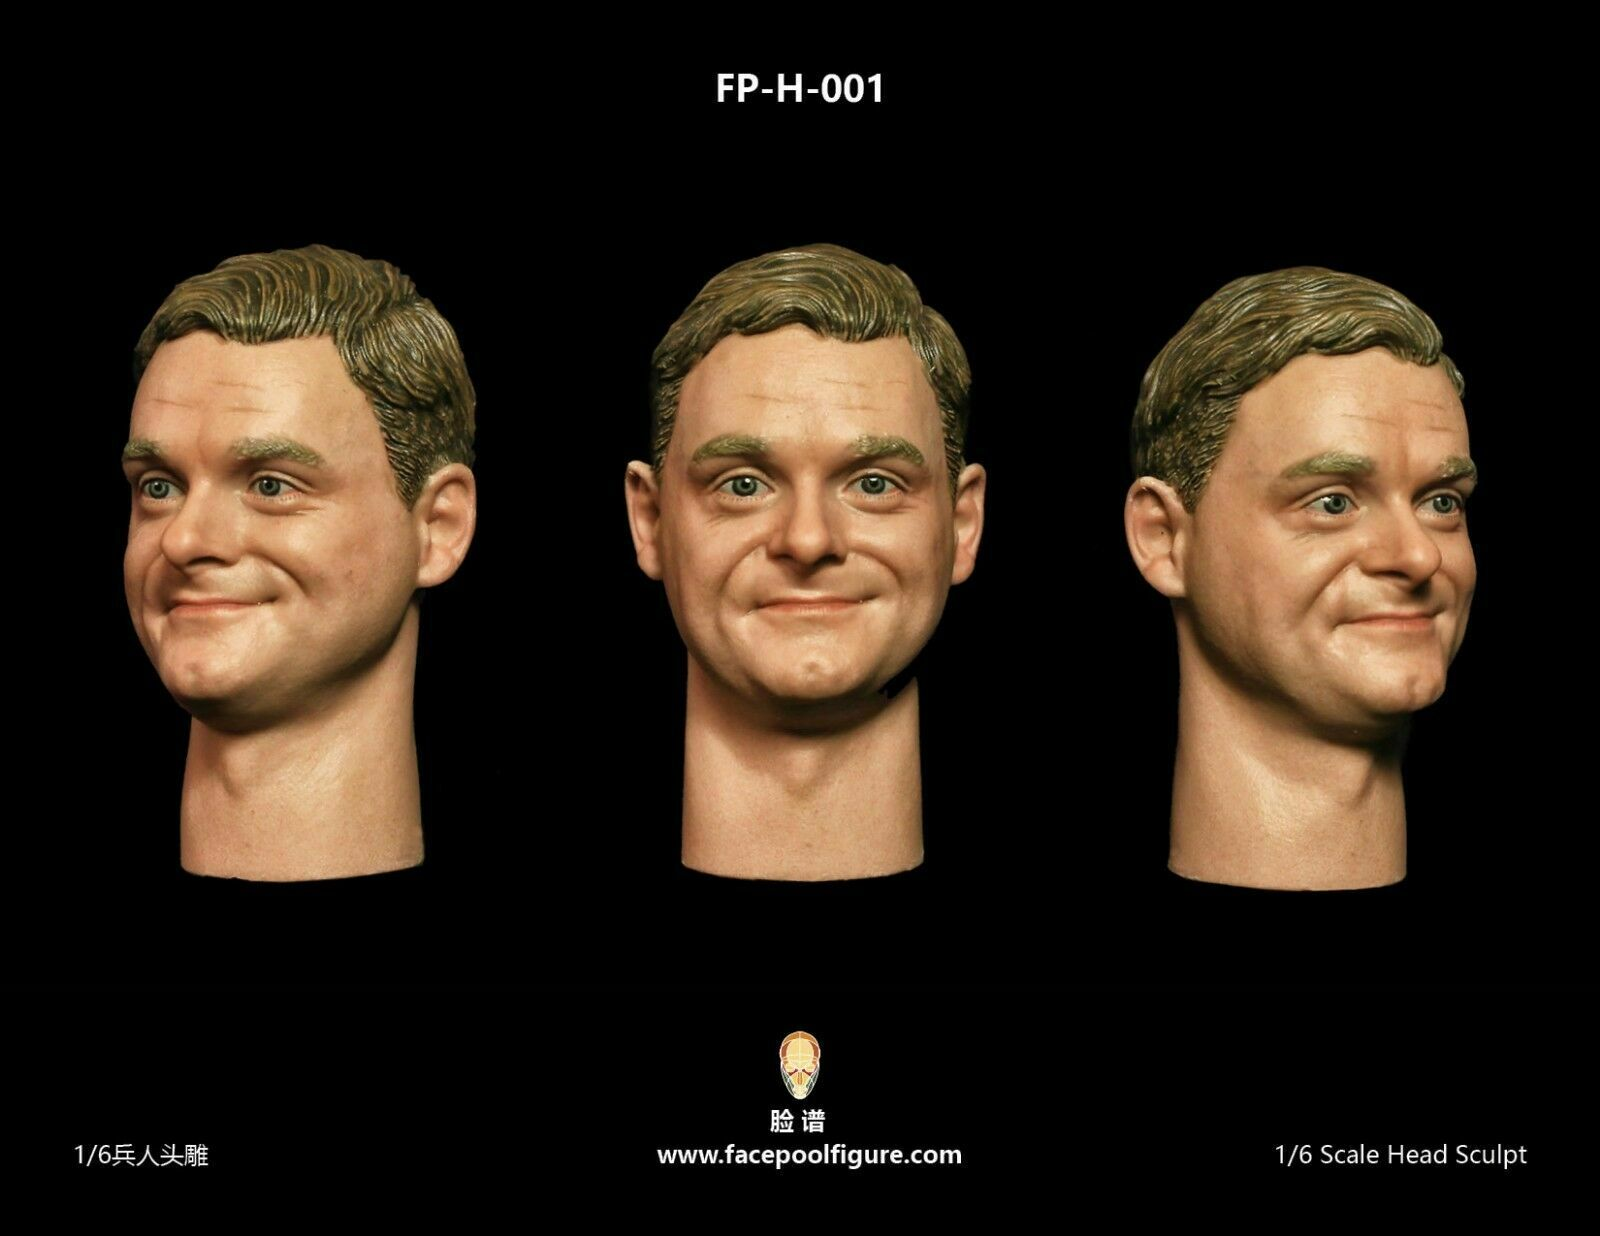 1 6 Facepoolfigure Head Sculpt W Smile Expression FP-H-001 Fit 12'' Male Body